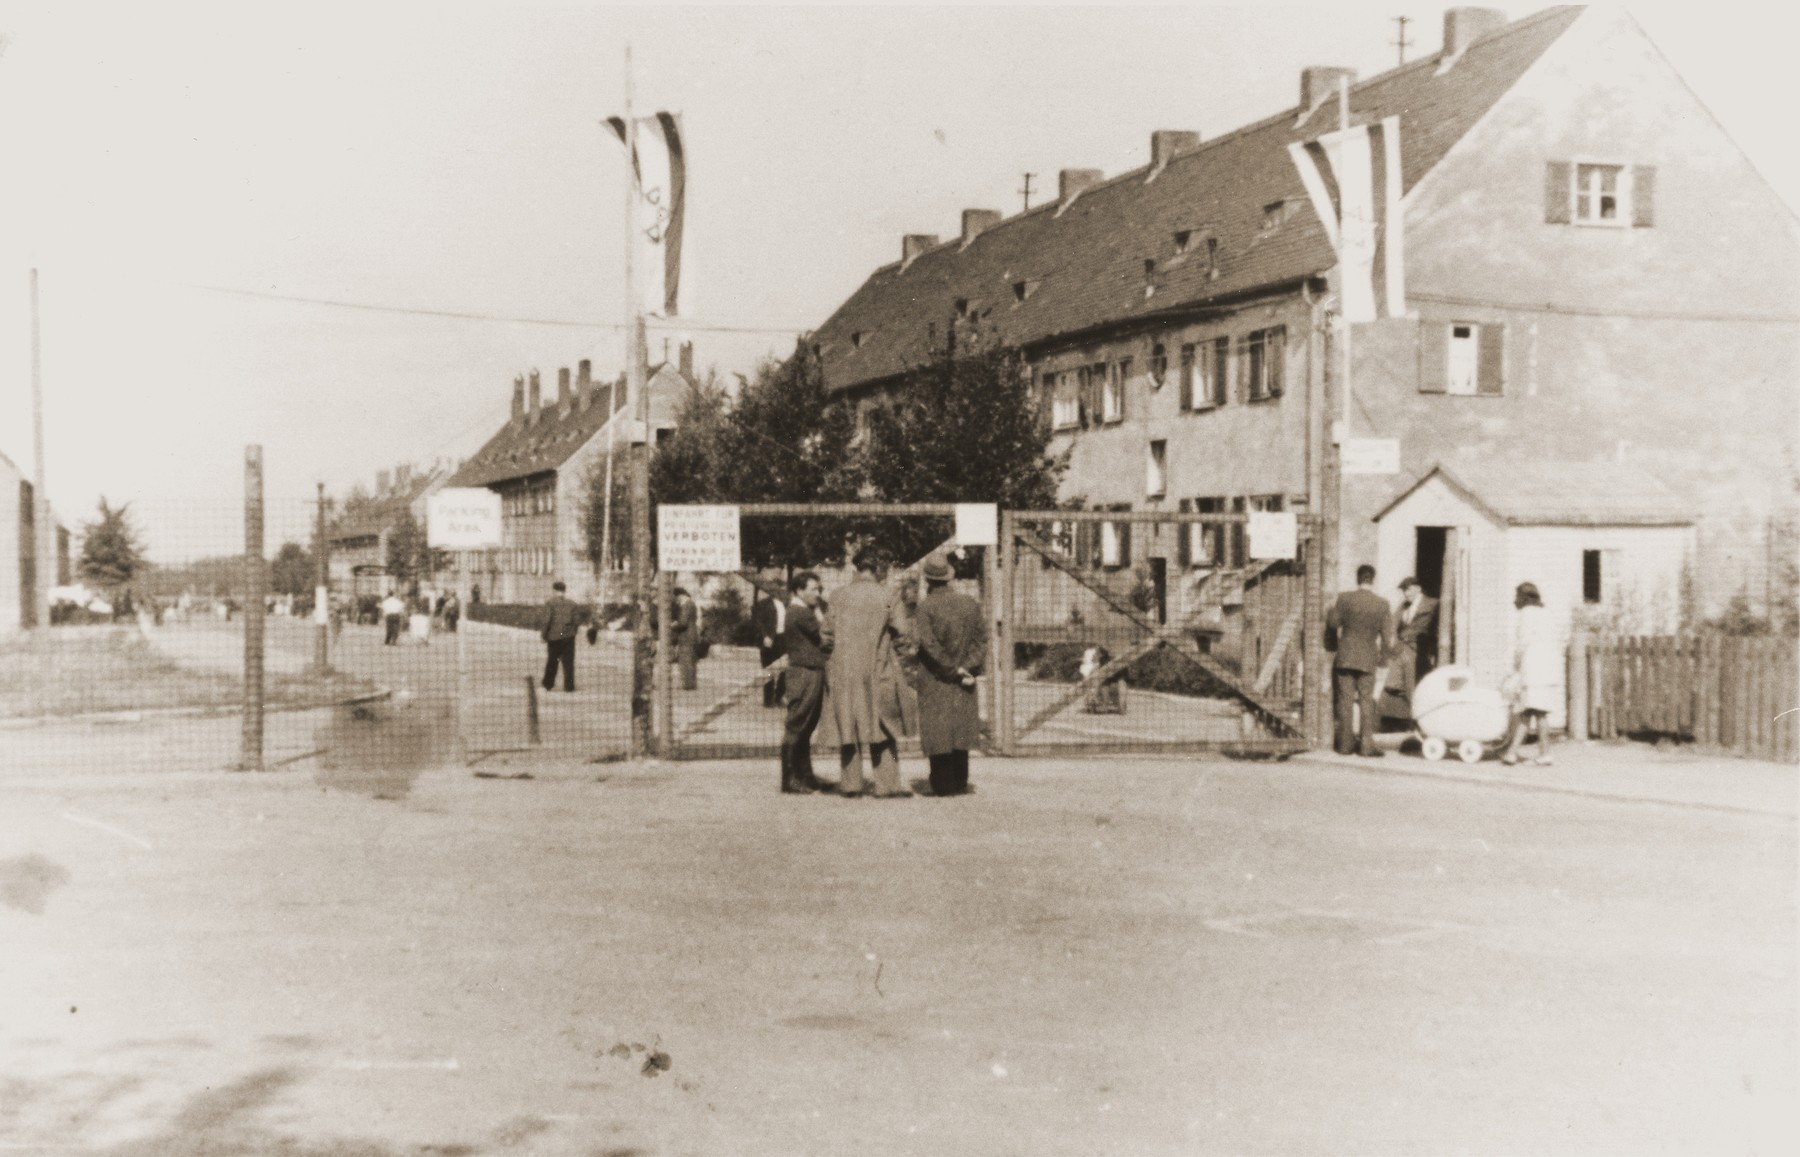 View of the entrance gates to the Finkenschlag displaced persons camp in Fuerth, Germany.  The donor, Eugenia Hochberg (b. November 27, 1928), is the daughter of Bernard and Diana Harmelin Hochberg of Brody, Poland.  She had one brother, Sigmund (b. 1922).  Her father earned his living as a grain shipper.  Eugenia attended a private non-religious Jewish school in Brody.  After the German invasion and the repartition of Poland in the fall of 1939, Brody came under Soviet occupation.  For two years the Hochbergs remained in their home, but were compelled to share their living quarters with other Jewish families.  No longer permitted to run his own business, Bernard was forced to take work as a night watchman.  In June 1941, following the German invasion of the Soviet Union, Brody fell under Nazi domination.  On November 27, 1941 Bernard was deported to a labor/concentration camp in Zborow, where he remained for five months until his wife could purchase his freedom and bring him home.  The Hochbergs relocated to the ghetto after its establishment in the winter of 1941-42.  During this period Eugenia was sent for forced labor to various sites outside the ghetto.  She also performed secretarial tasks in the offices of the Judenrat.  The family was rounded-up during the final liquidation of the Brody ghetto on May 21, 1943.  While on the deportation train to Majdanek, Eugenia's parents forced her to jump off before they reached their destination.  Eugenia was found semi-conscious by Polish peasants who stole her clothing and were about to take her to the police, when a railway worker appeared and insisted on taking her himself.  Instead of turning her in, however, he offered her temporary shelter and found clothes for her to wear.  Eugenia found her way back to Brody, where she smuggled herself into the forced labor camp.  Several weeks later she smuggled herself back out and found refuge with a Polish woman, who harbored other Jews for payment.  Eugenia narrowly escaped capture by the Gestapo during a raid of her place of refuge in February 1944.  Though she was able to find a Russian woman to take her in, Eugenia had to spend the last six weeks of the war concealed in a hole under the woman's bed.  Following her liberation in March 1944, Eugenia lived for a time in Brody and Lublin.  She married Henryk Lanceter in July 1945, and five months later left for Germany.  The couple took up residence in the Finkenschlag DP camp in Fuerth, where their daughter was born.  In the summer of 1949 the family emigrated to the United States, sailing aboard the SS General Holbrook to Boston.